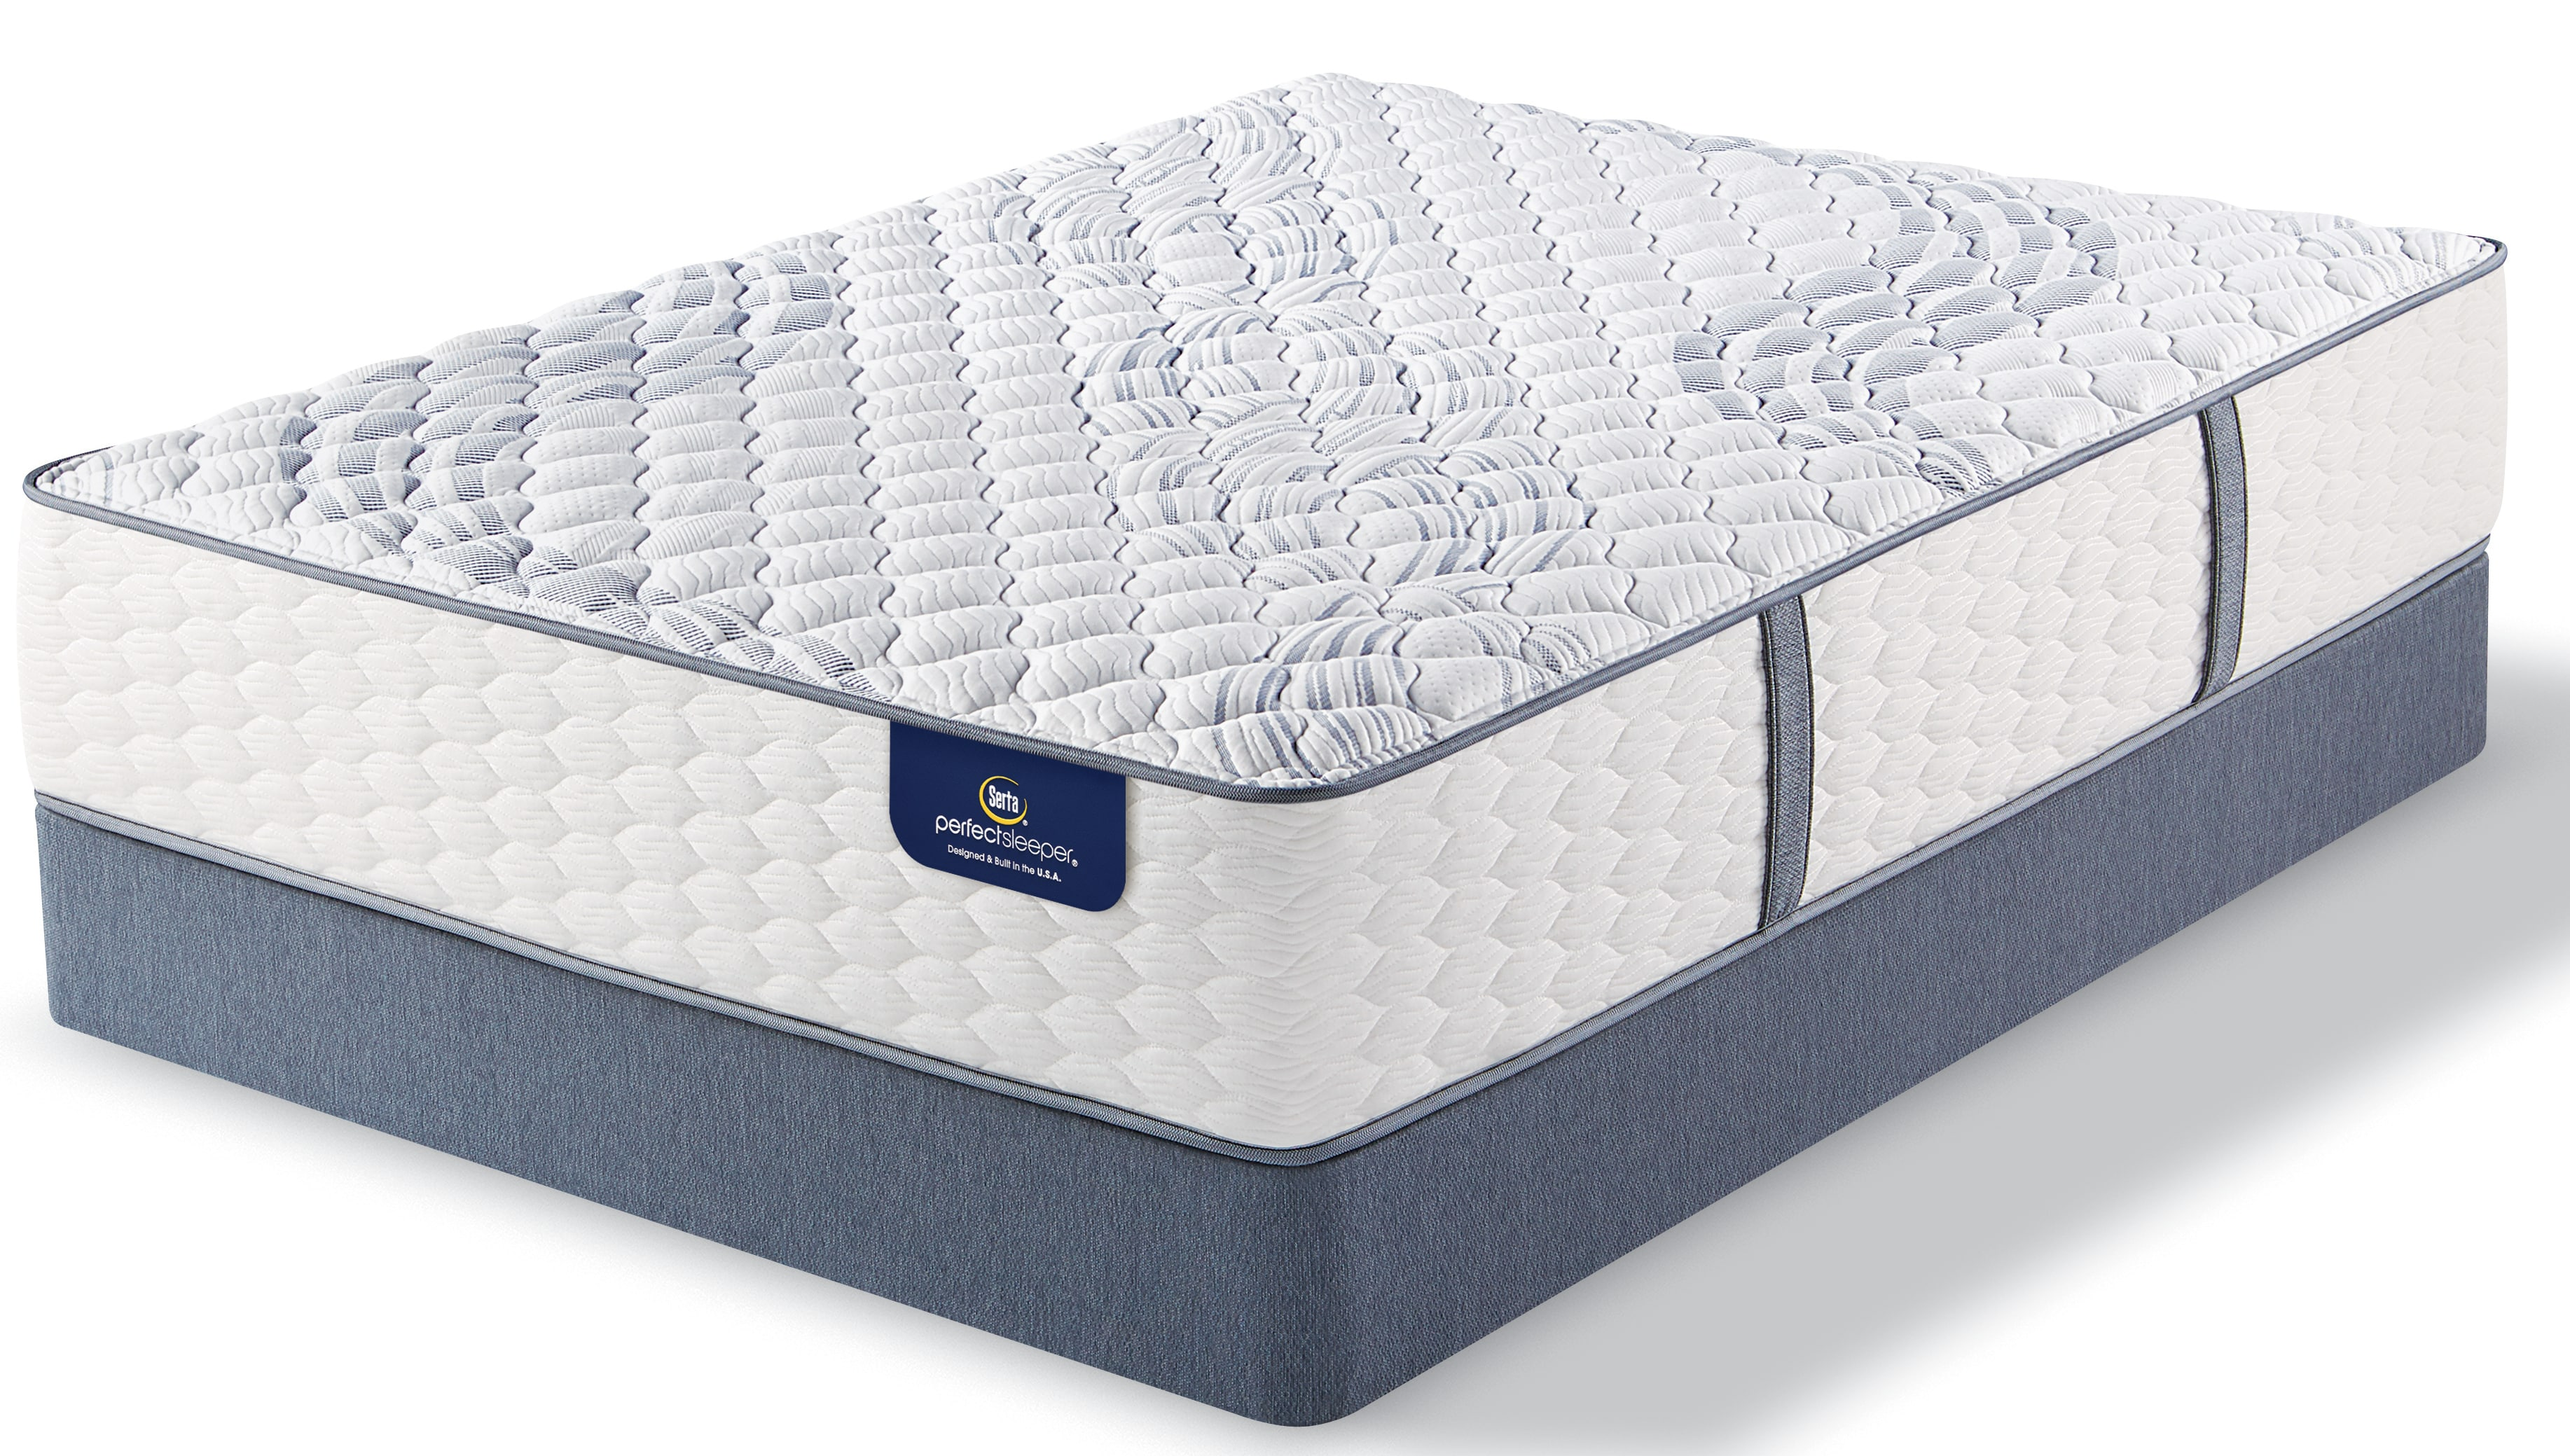 Image Of J Life Futon Luxury Firm California King Mattress And Split Boxsprings